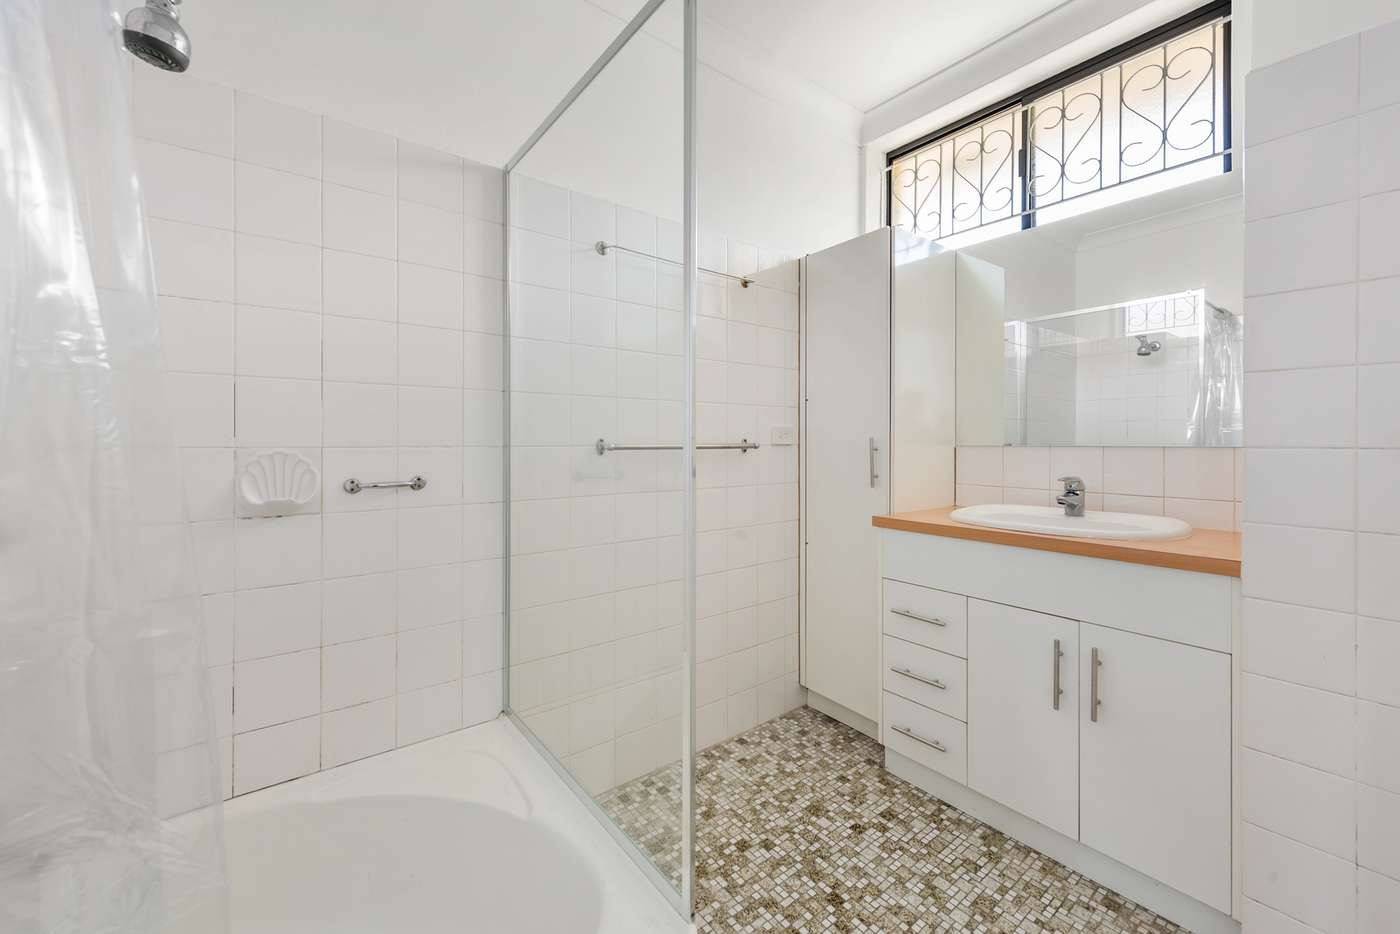 Fifth view of Homely apartment listing, 5/36 Terrace Street, Newmarket QLD 4051